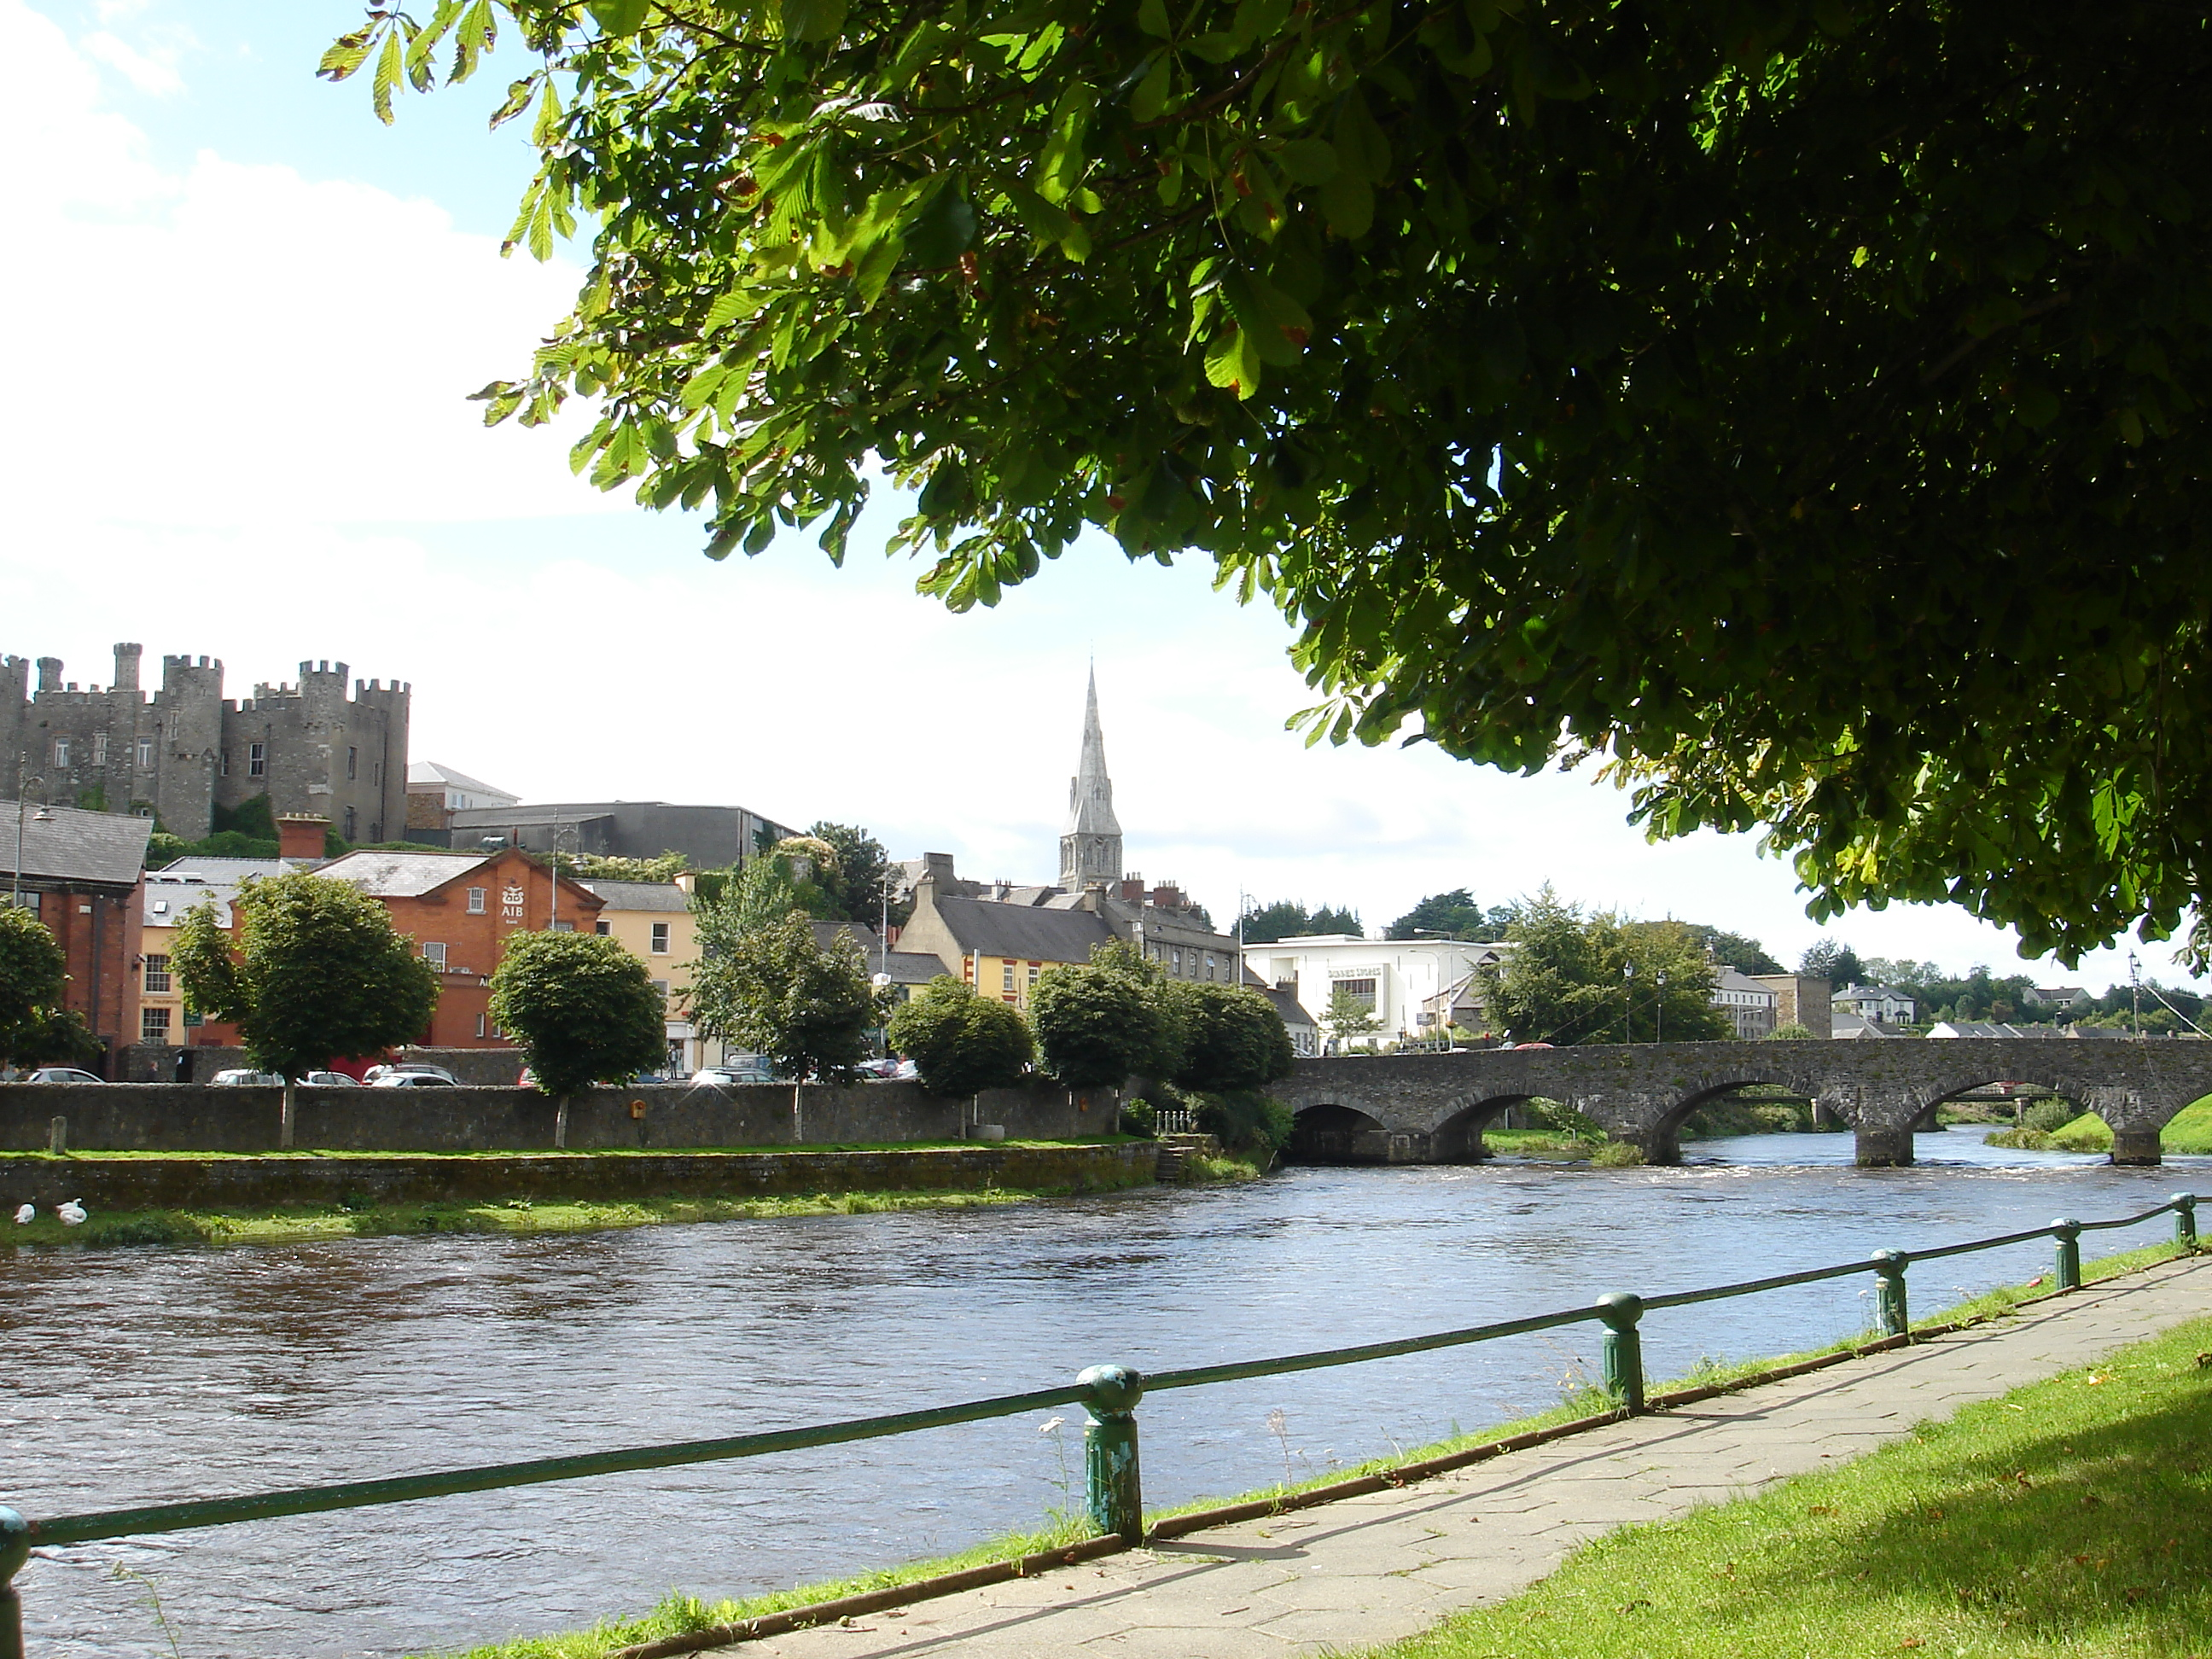 County Wexford Hotels Compare 38 Hotels In County